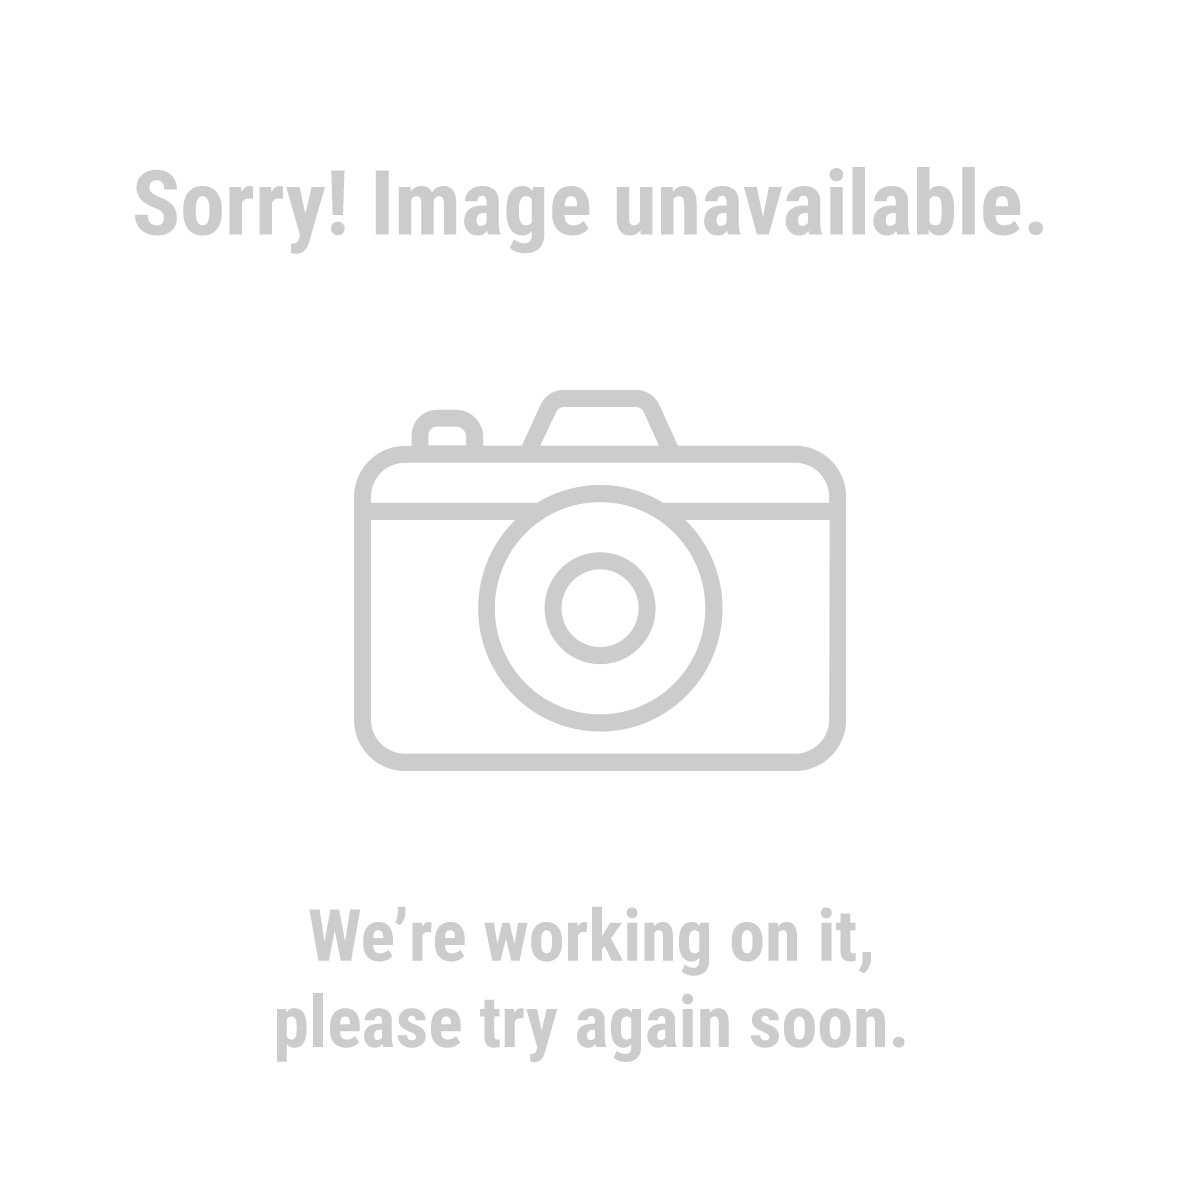 HARDY 62714 Split Leather Work Gloves with Cotton Back 5 Pr.